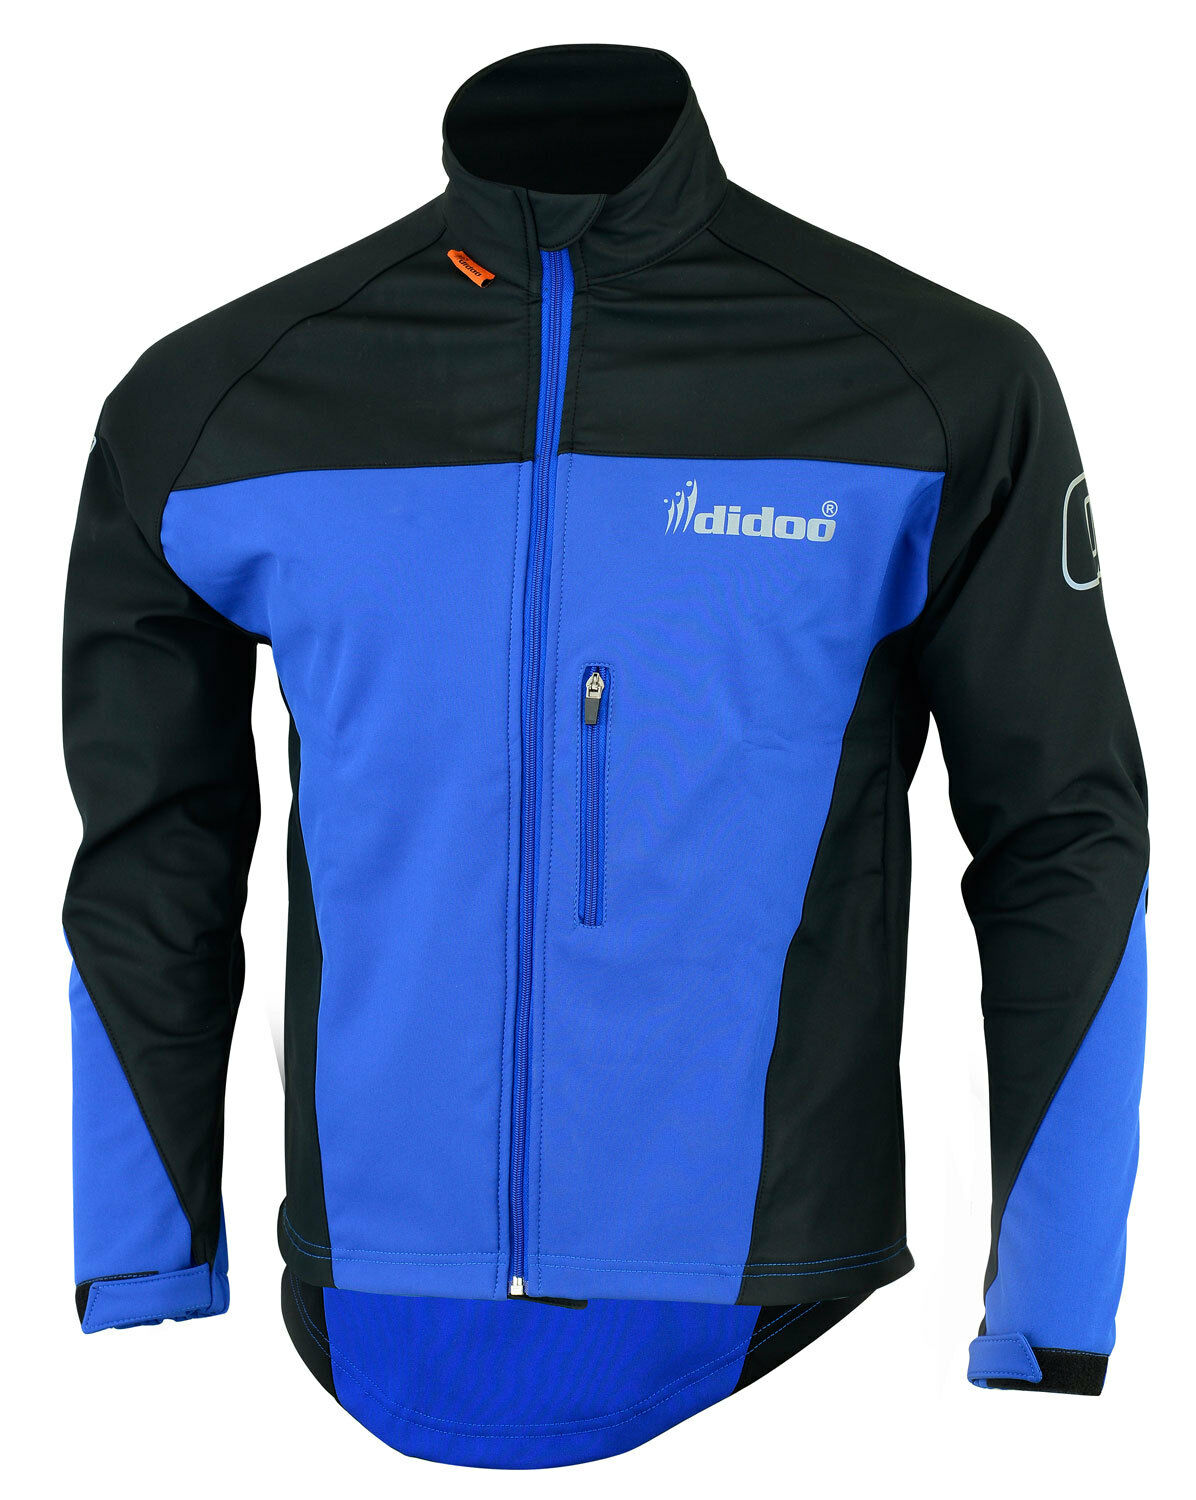 New men 39 s soft shell jackets wind resistant lightweight for Wind resistant material